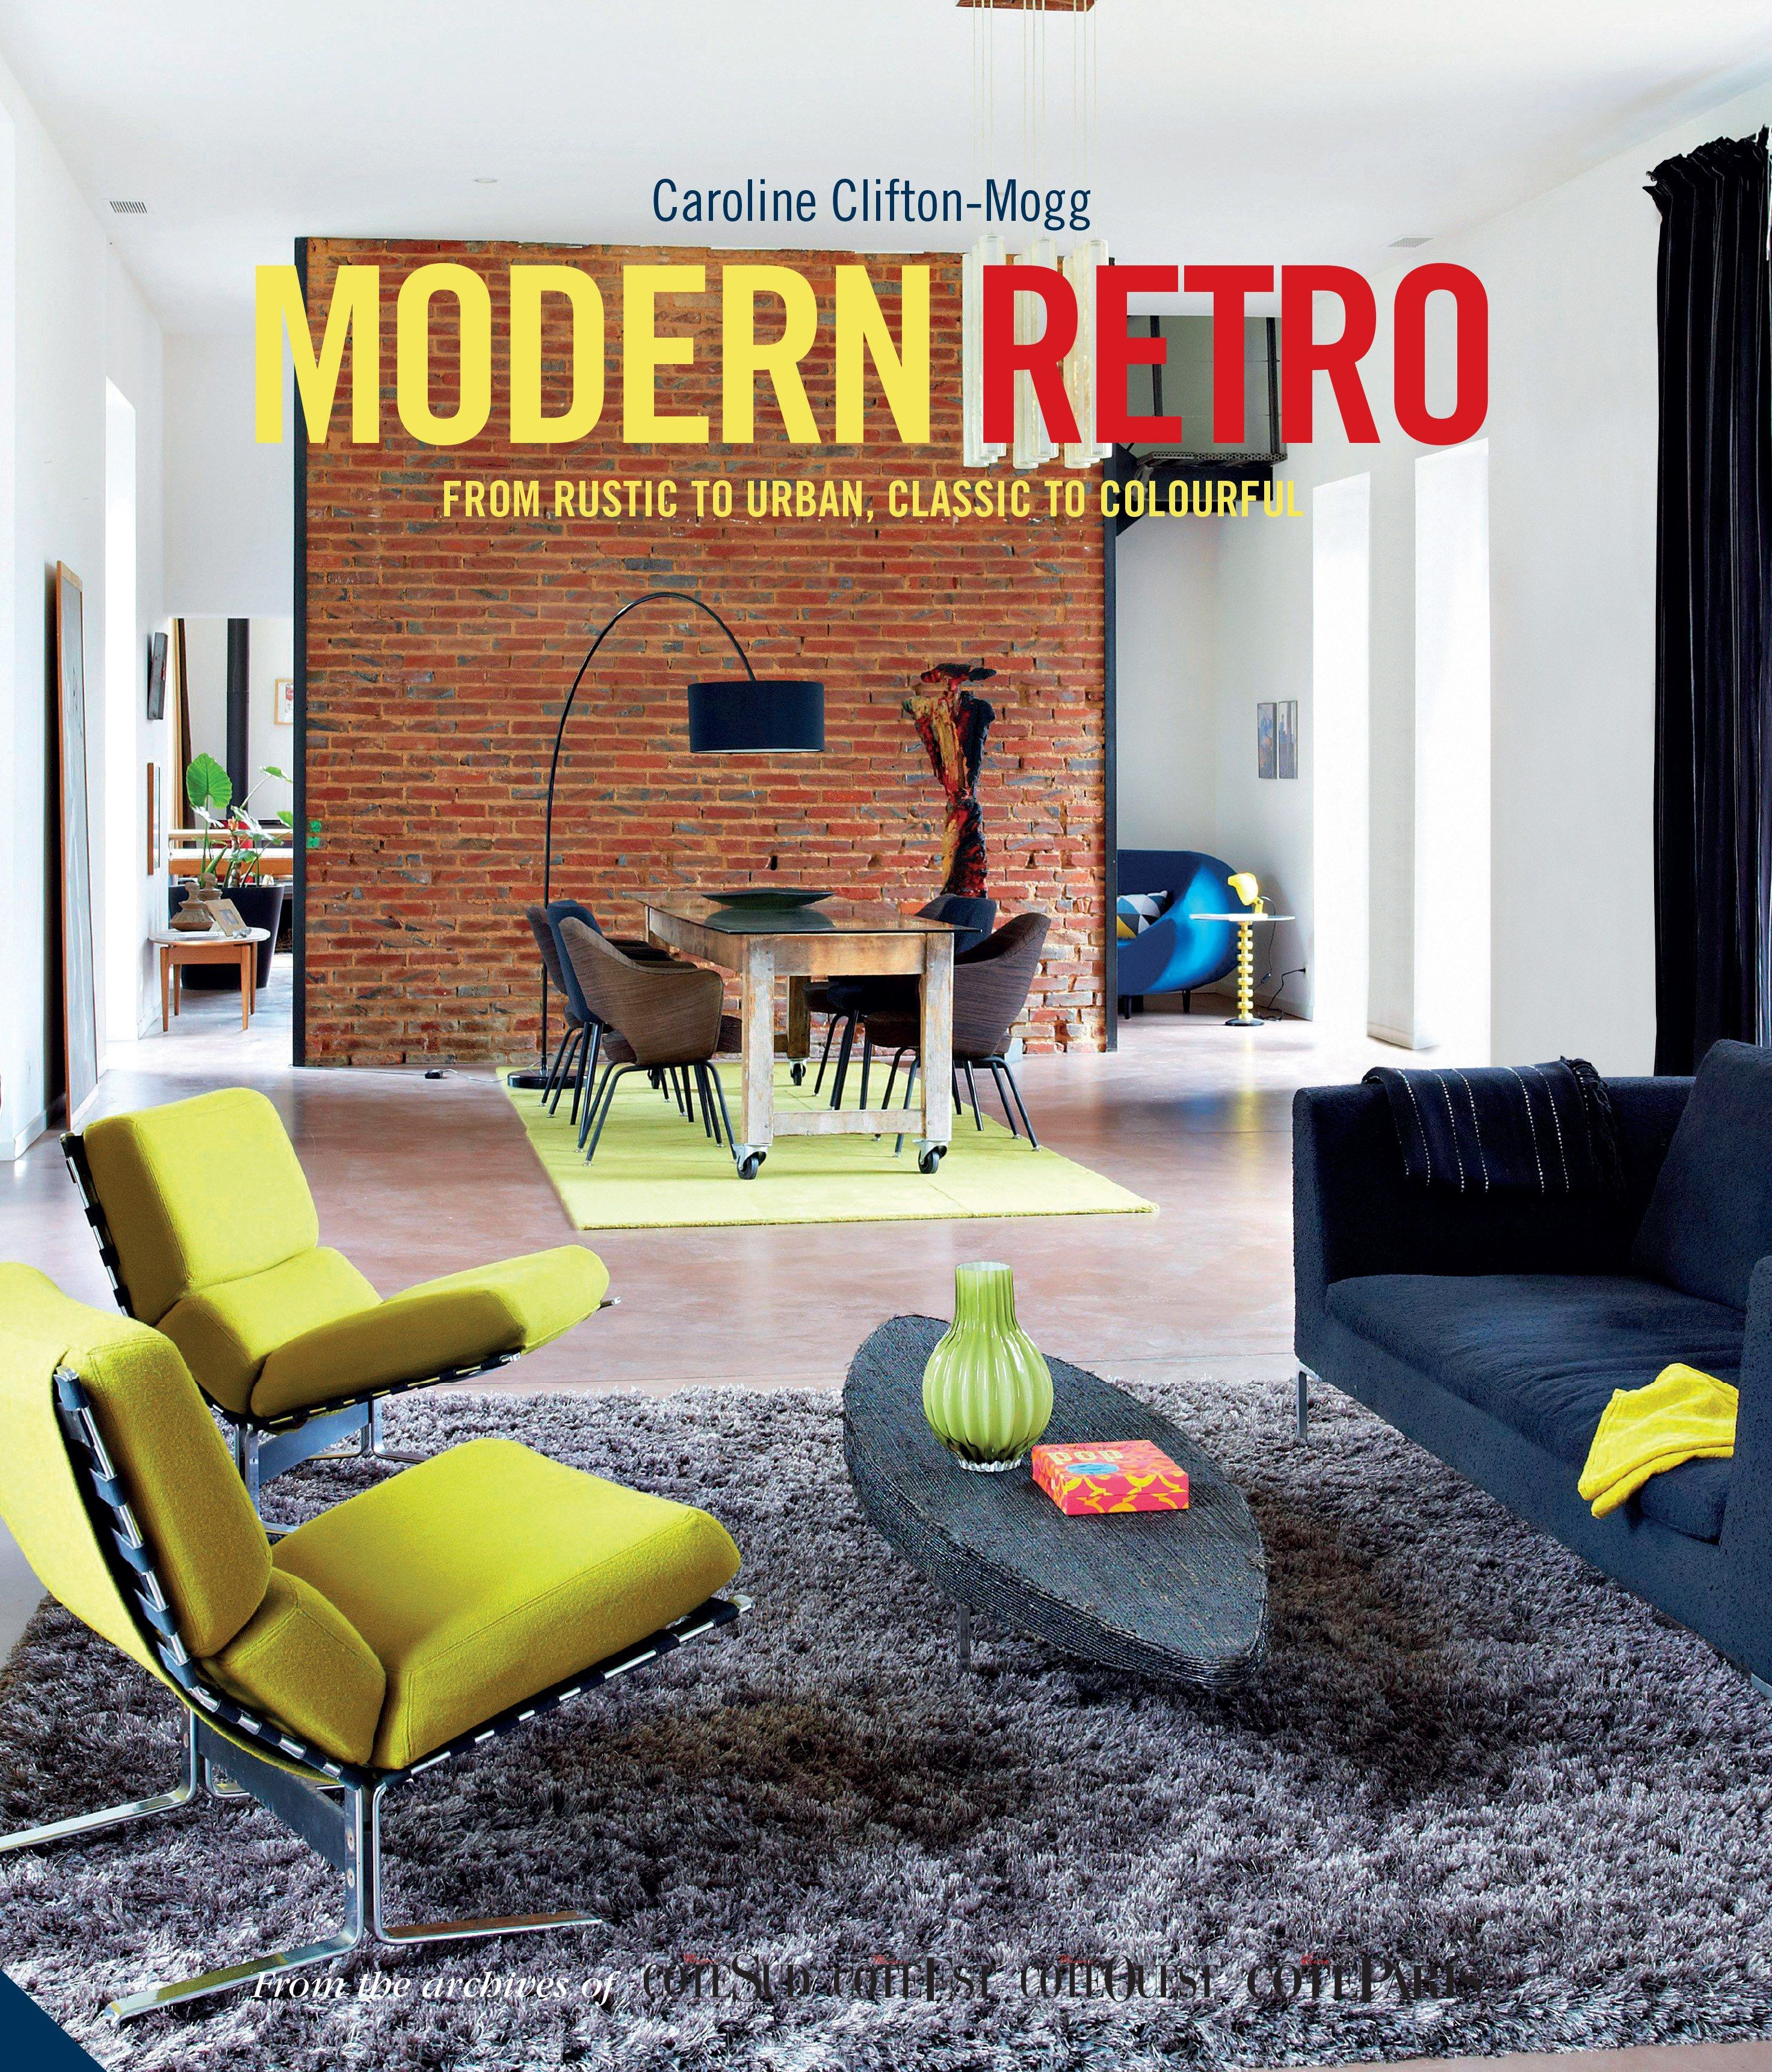 Here's How to Incorporate Retro Design into Your Decor Photos | Architectural Digest